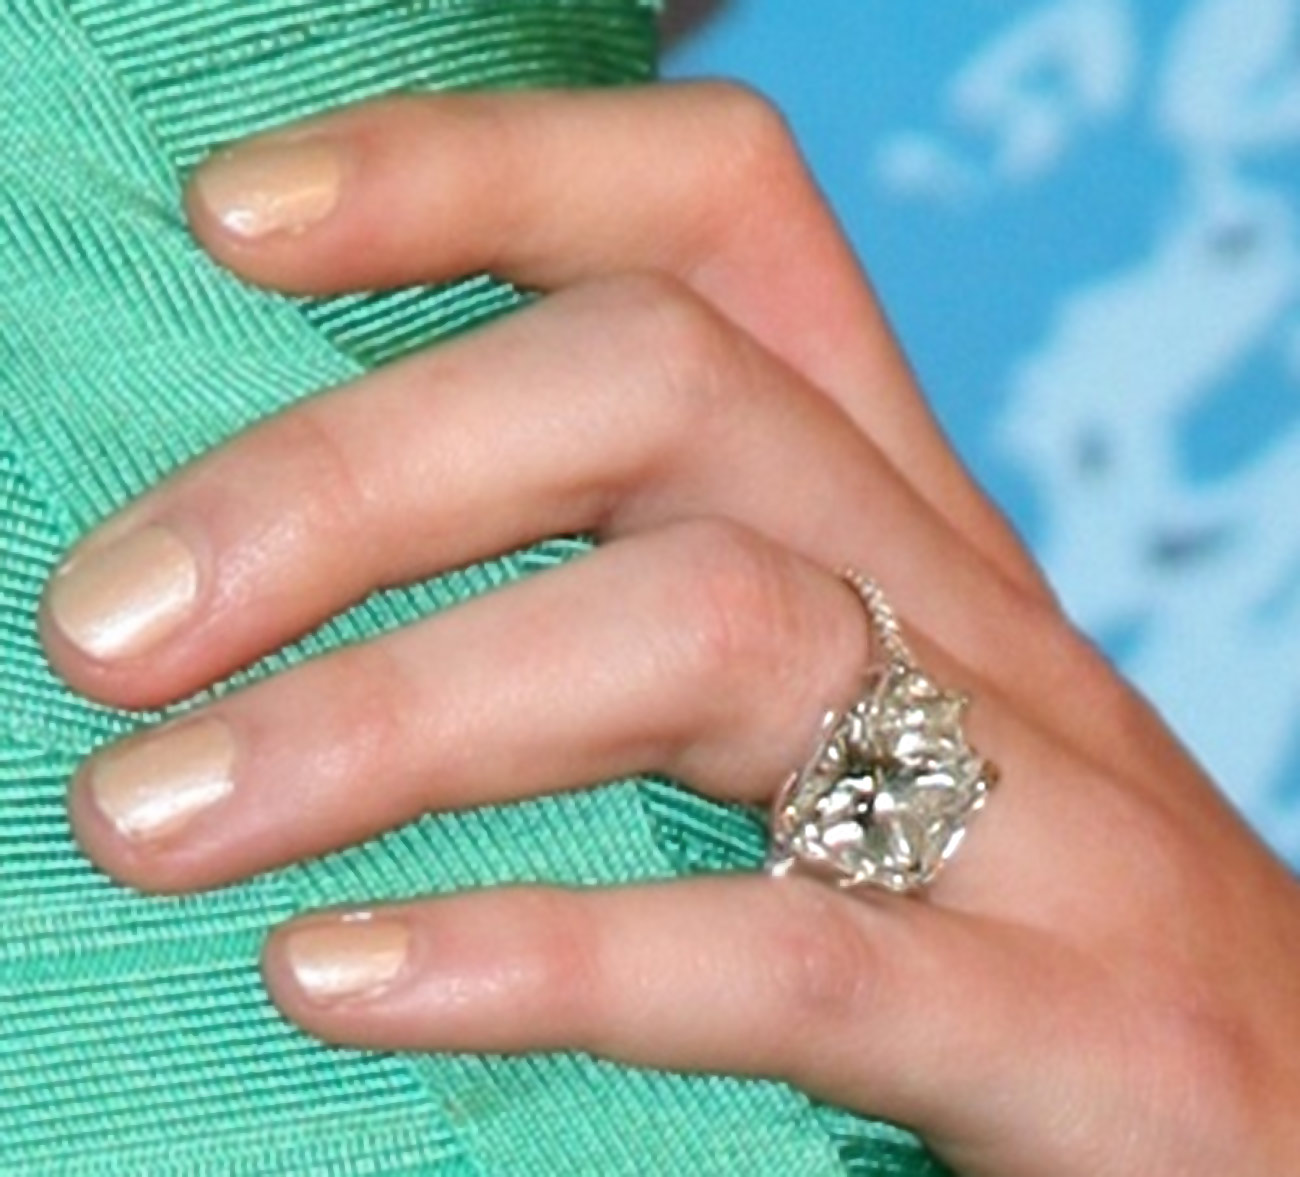 http://1.bp.blogspot.com/-PgGlAJ2NaQ0/TpuvpewW_LI/AAAAAAAAEtU/zEisKnLBvlc/s1600/hilary-duff-engagement-ring-photo.jpg